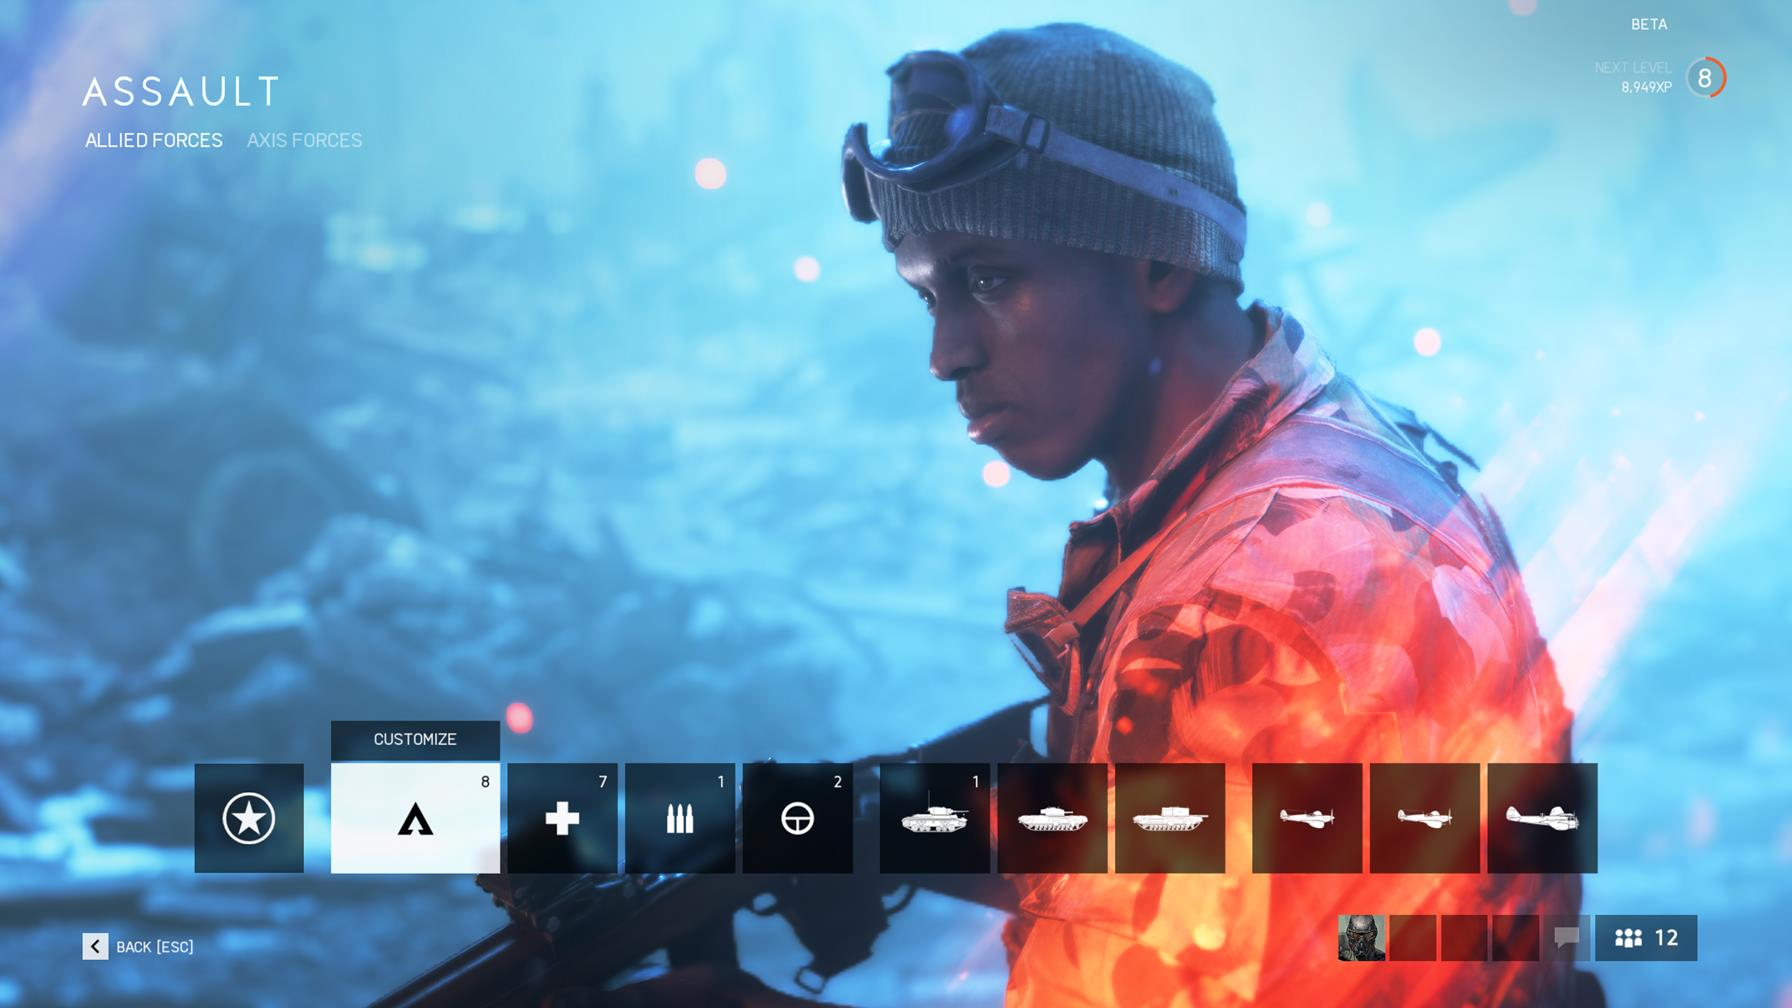 Battlefield 5: how to track Assignments, Special Assignments